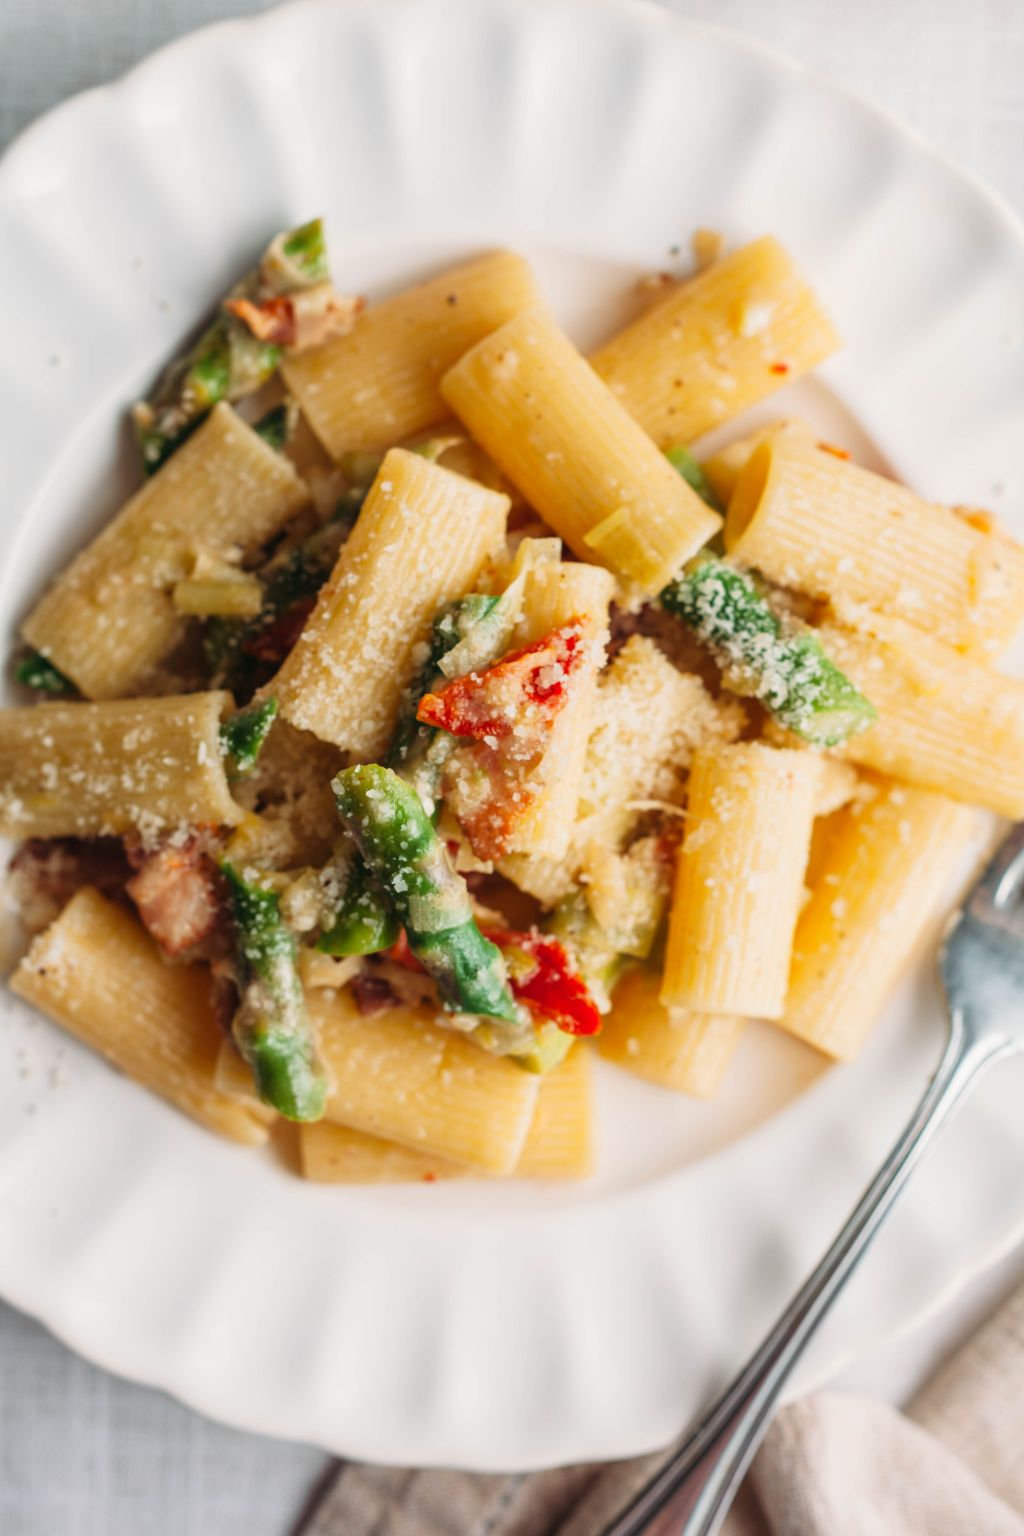 Rigatoni with Asparagus and Sun-dried Tomatoes